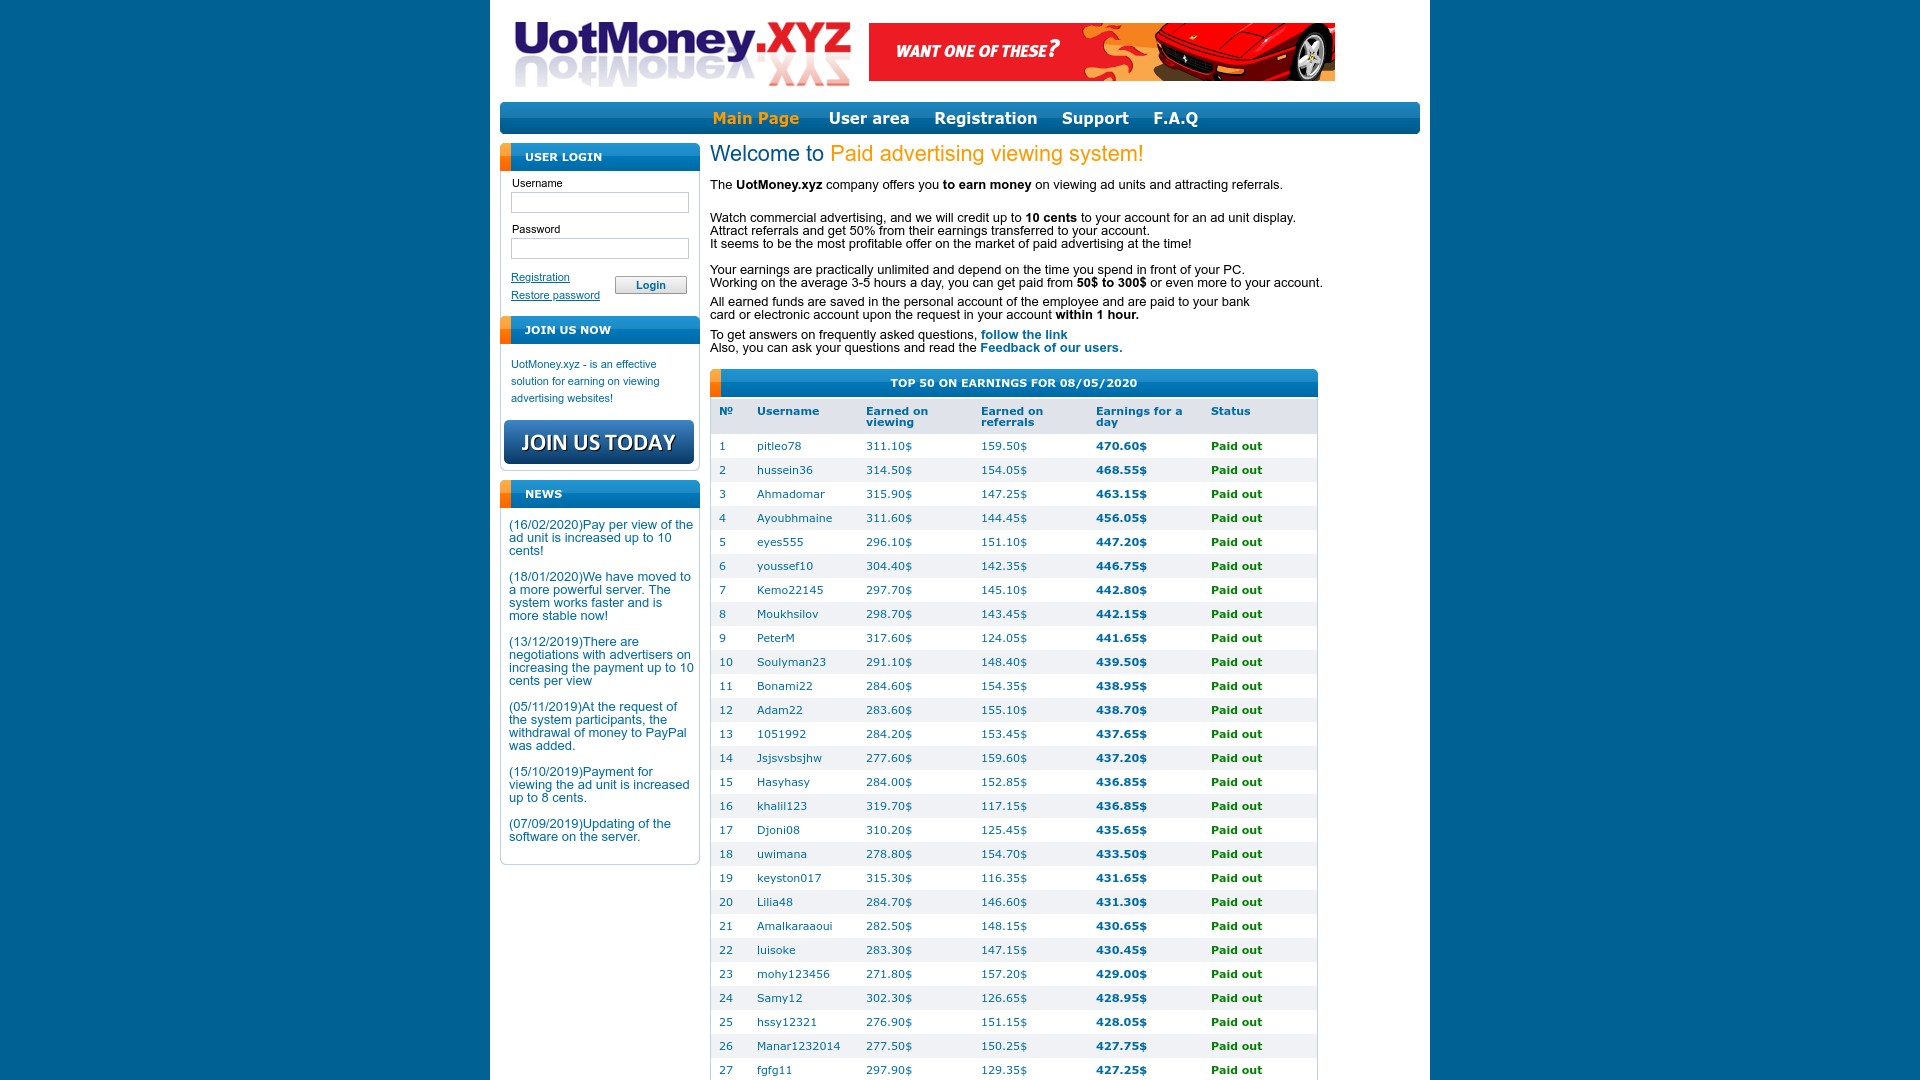 Uotmoney is a Fraudulent Work-From-Home Website